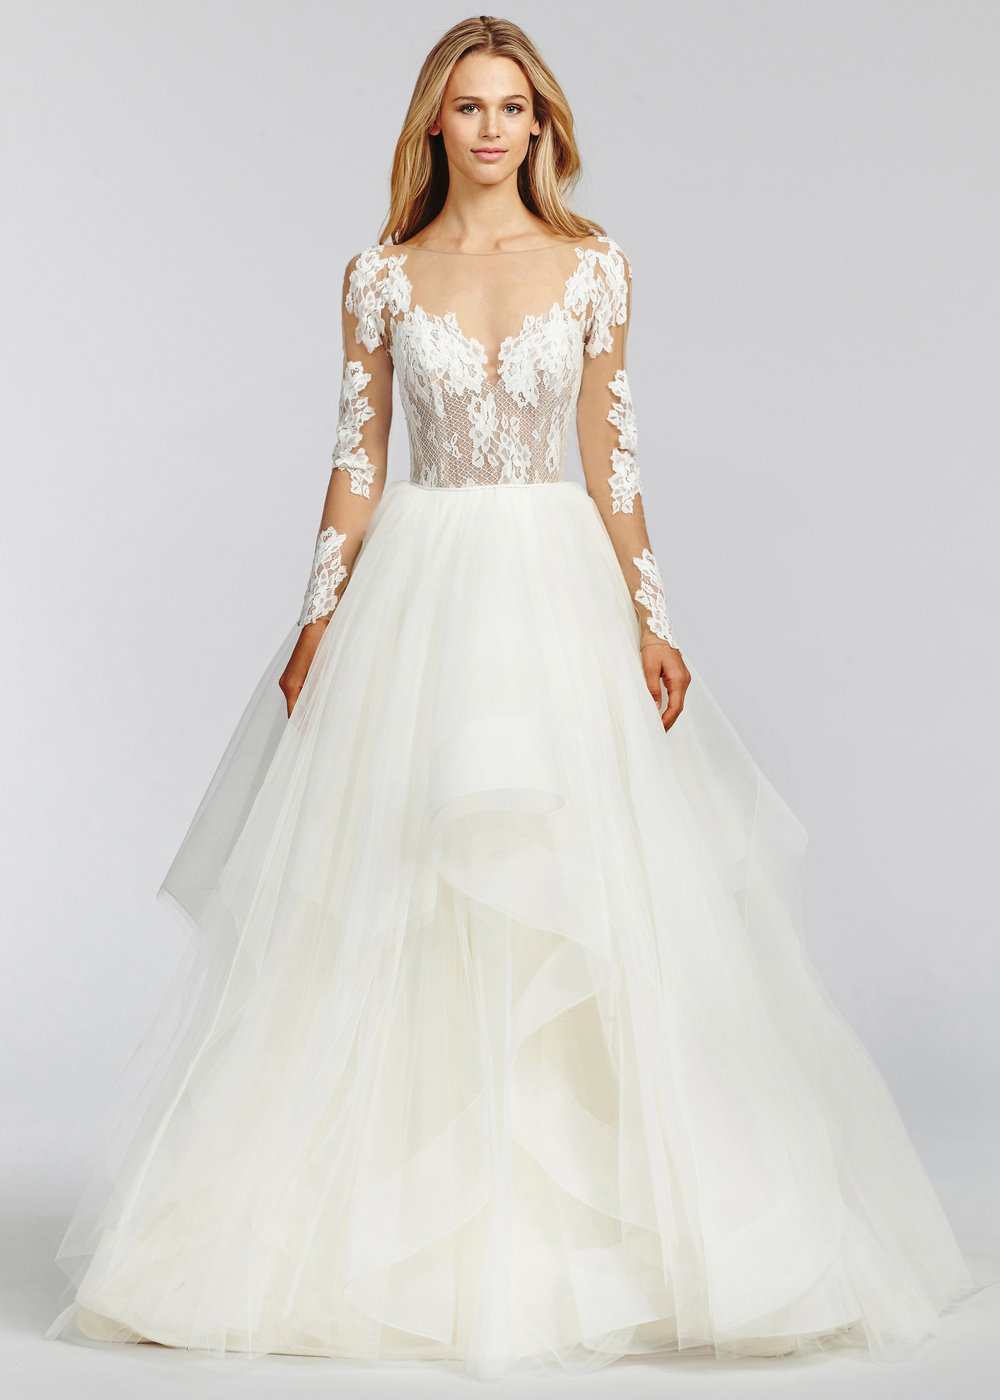 blush-hayley-paige-bridal-fall-2016-style-1652-pippa.jpg